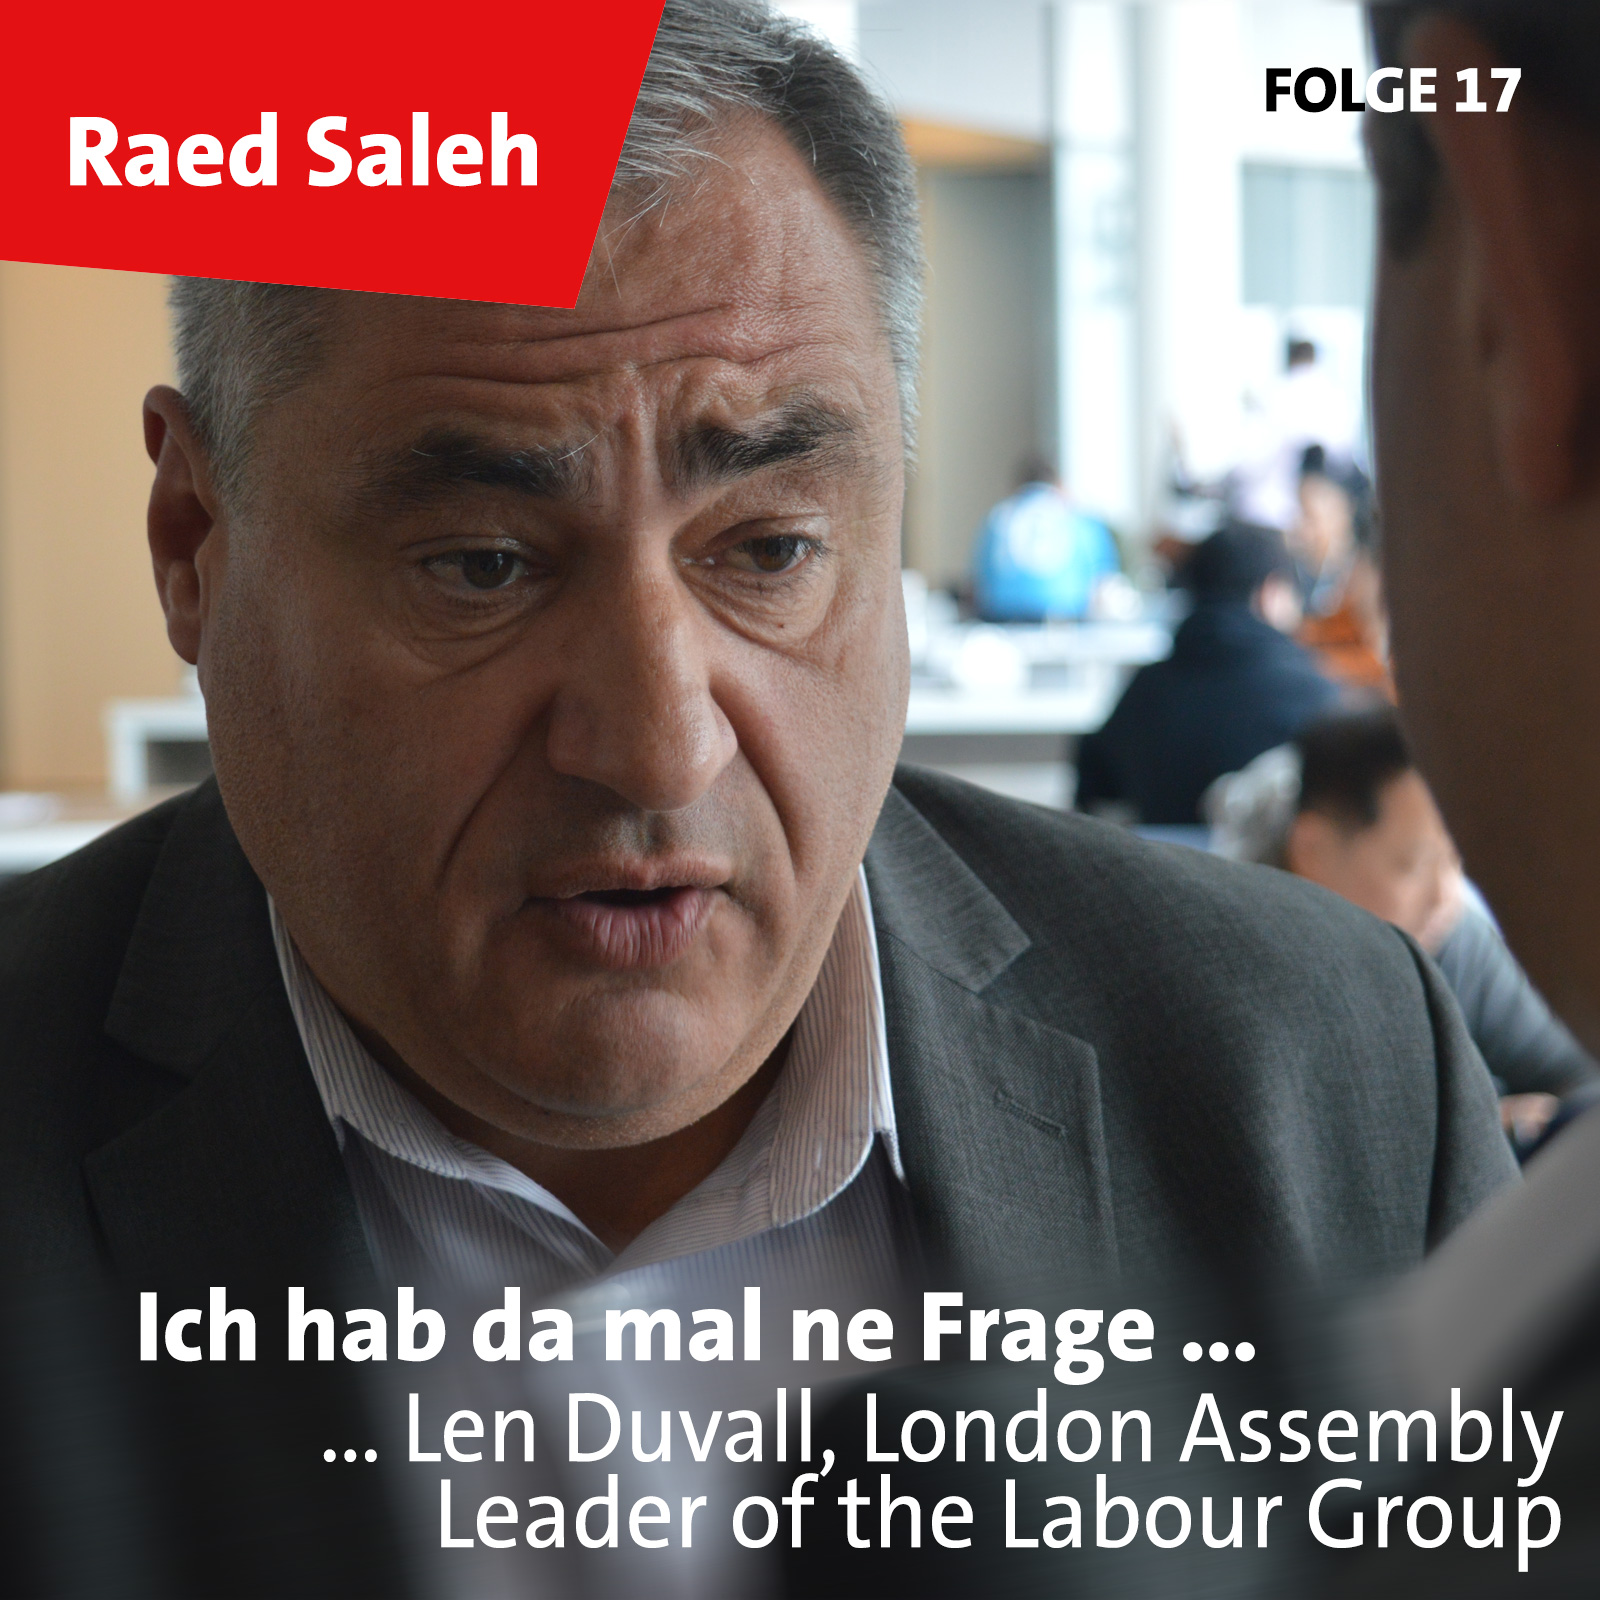 Folge 17: Len Duvall, London Assembly